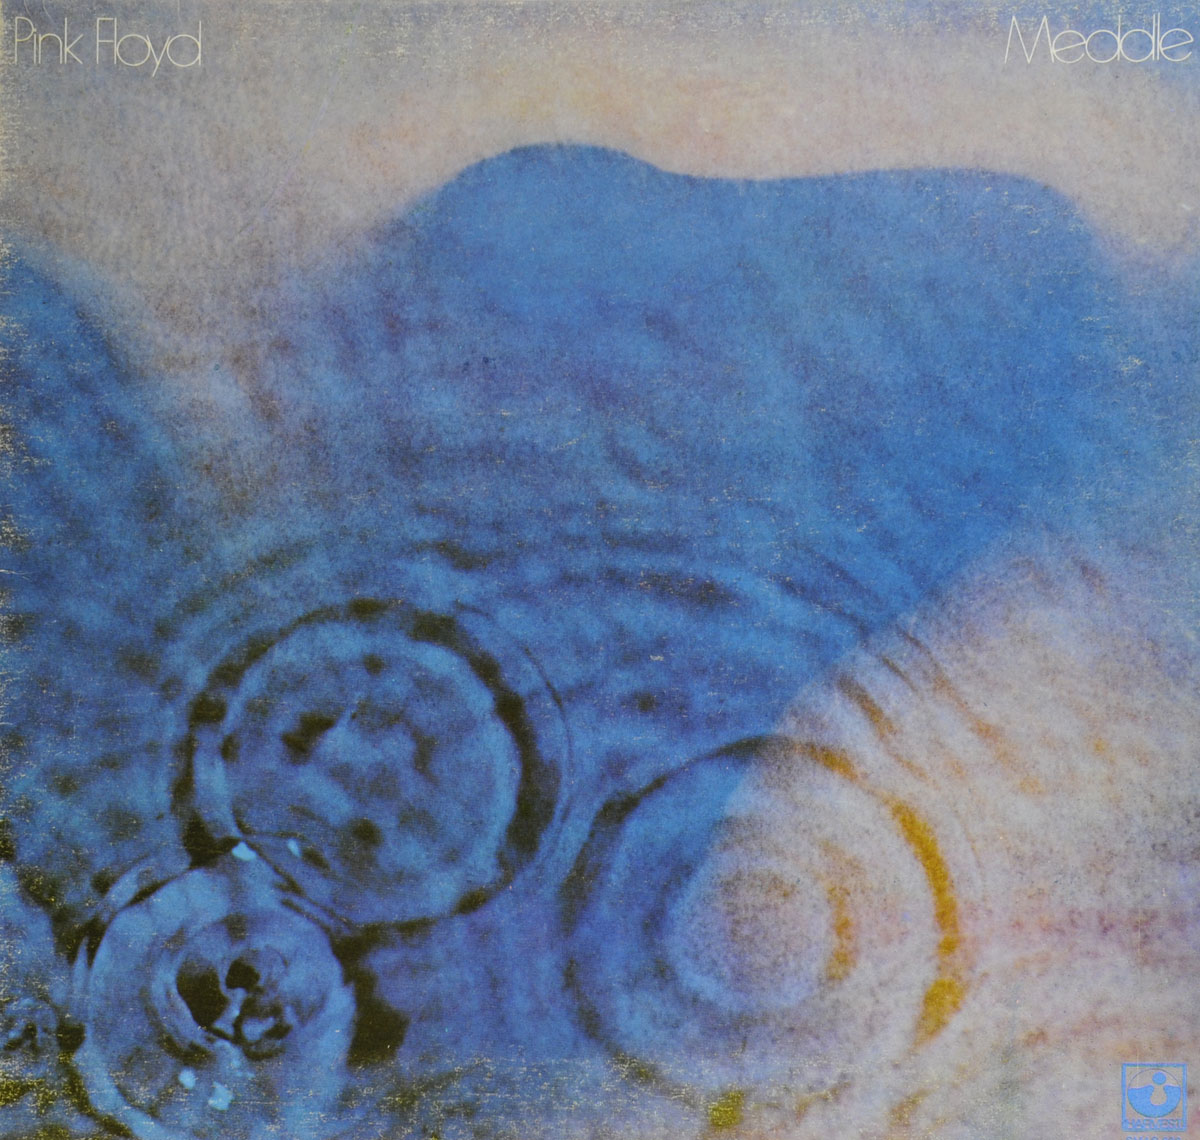 High Resolution Photo #1 PINK FLOYD Meddle Canada